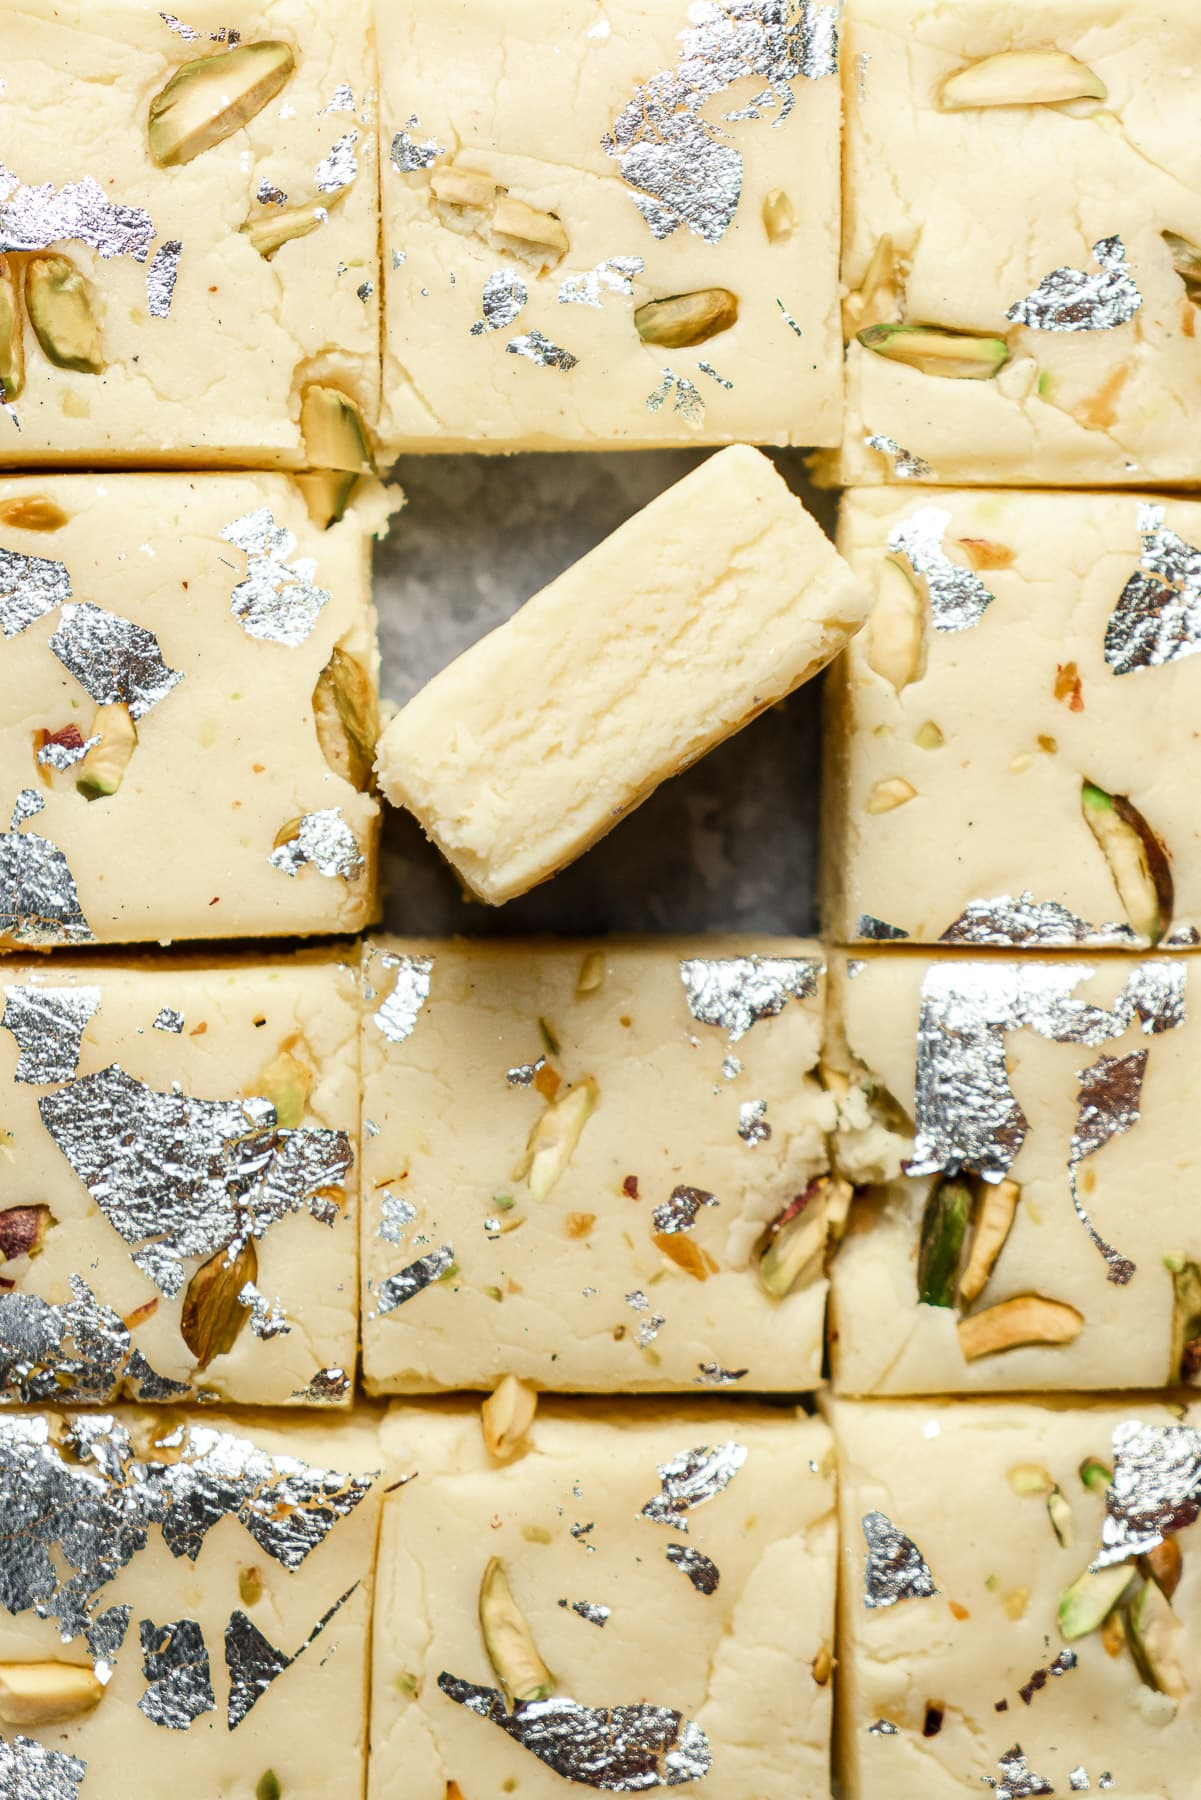 tops of the barfi with one turned on its side